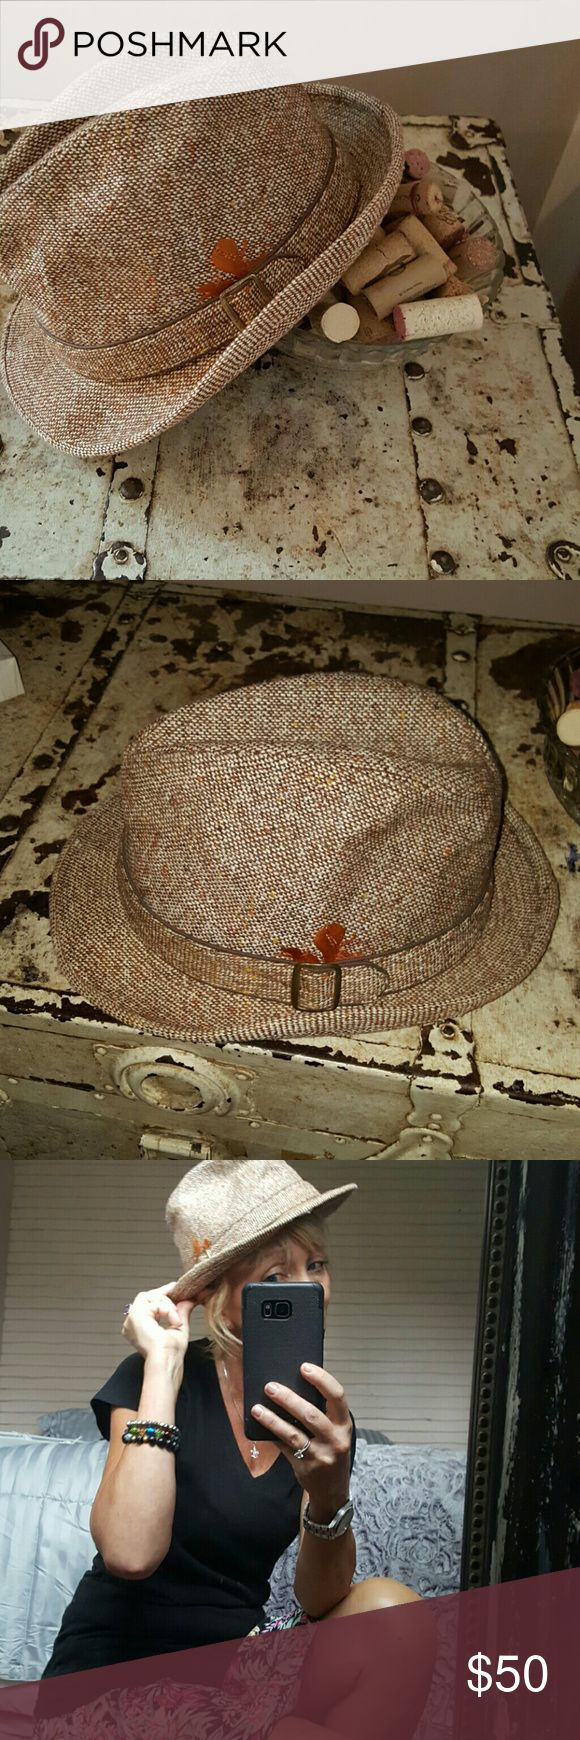 Fashion! Fedora  Dobbs hat Sale! Great bargain! THIS  years hot trend for women and men. This is a men's Fedora brand new tweed Fedora hat. Either or for women or men. Great gift! Dobbs Accessories Hats